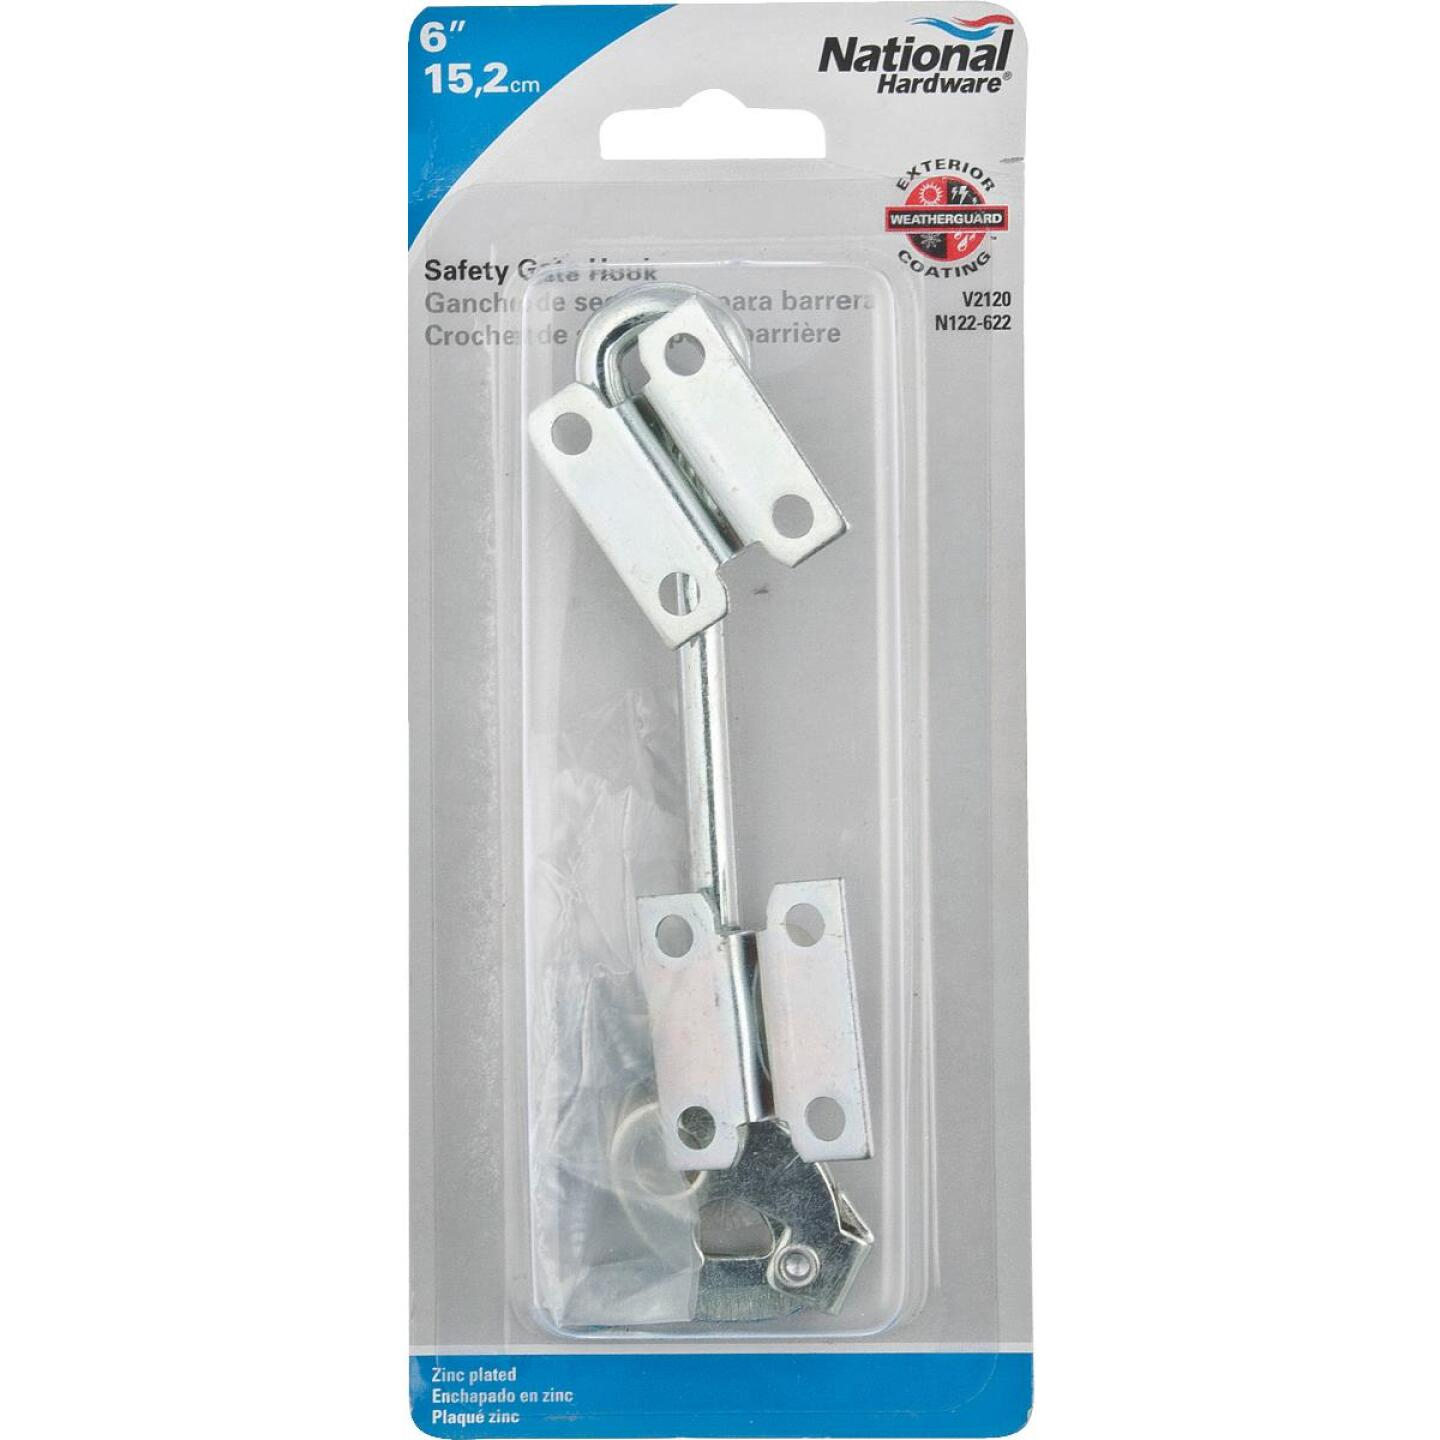 National 6 In. Steel Safety Gate Hook Image 2